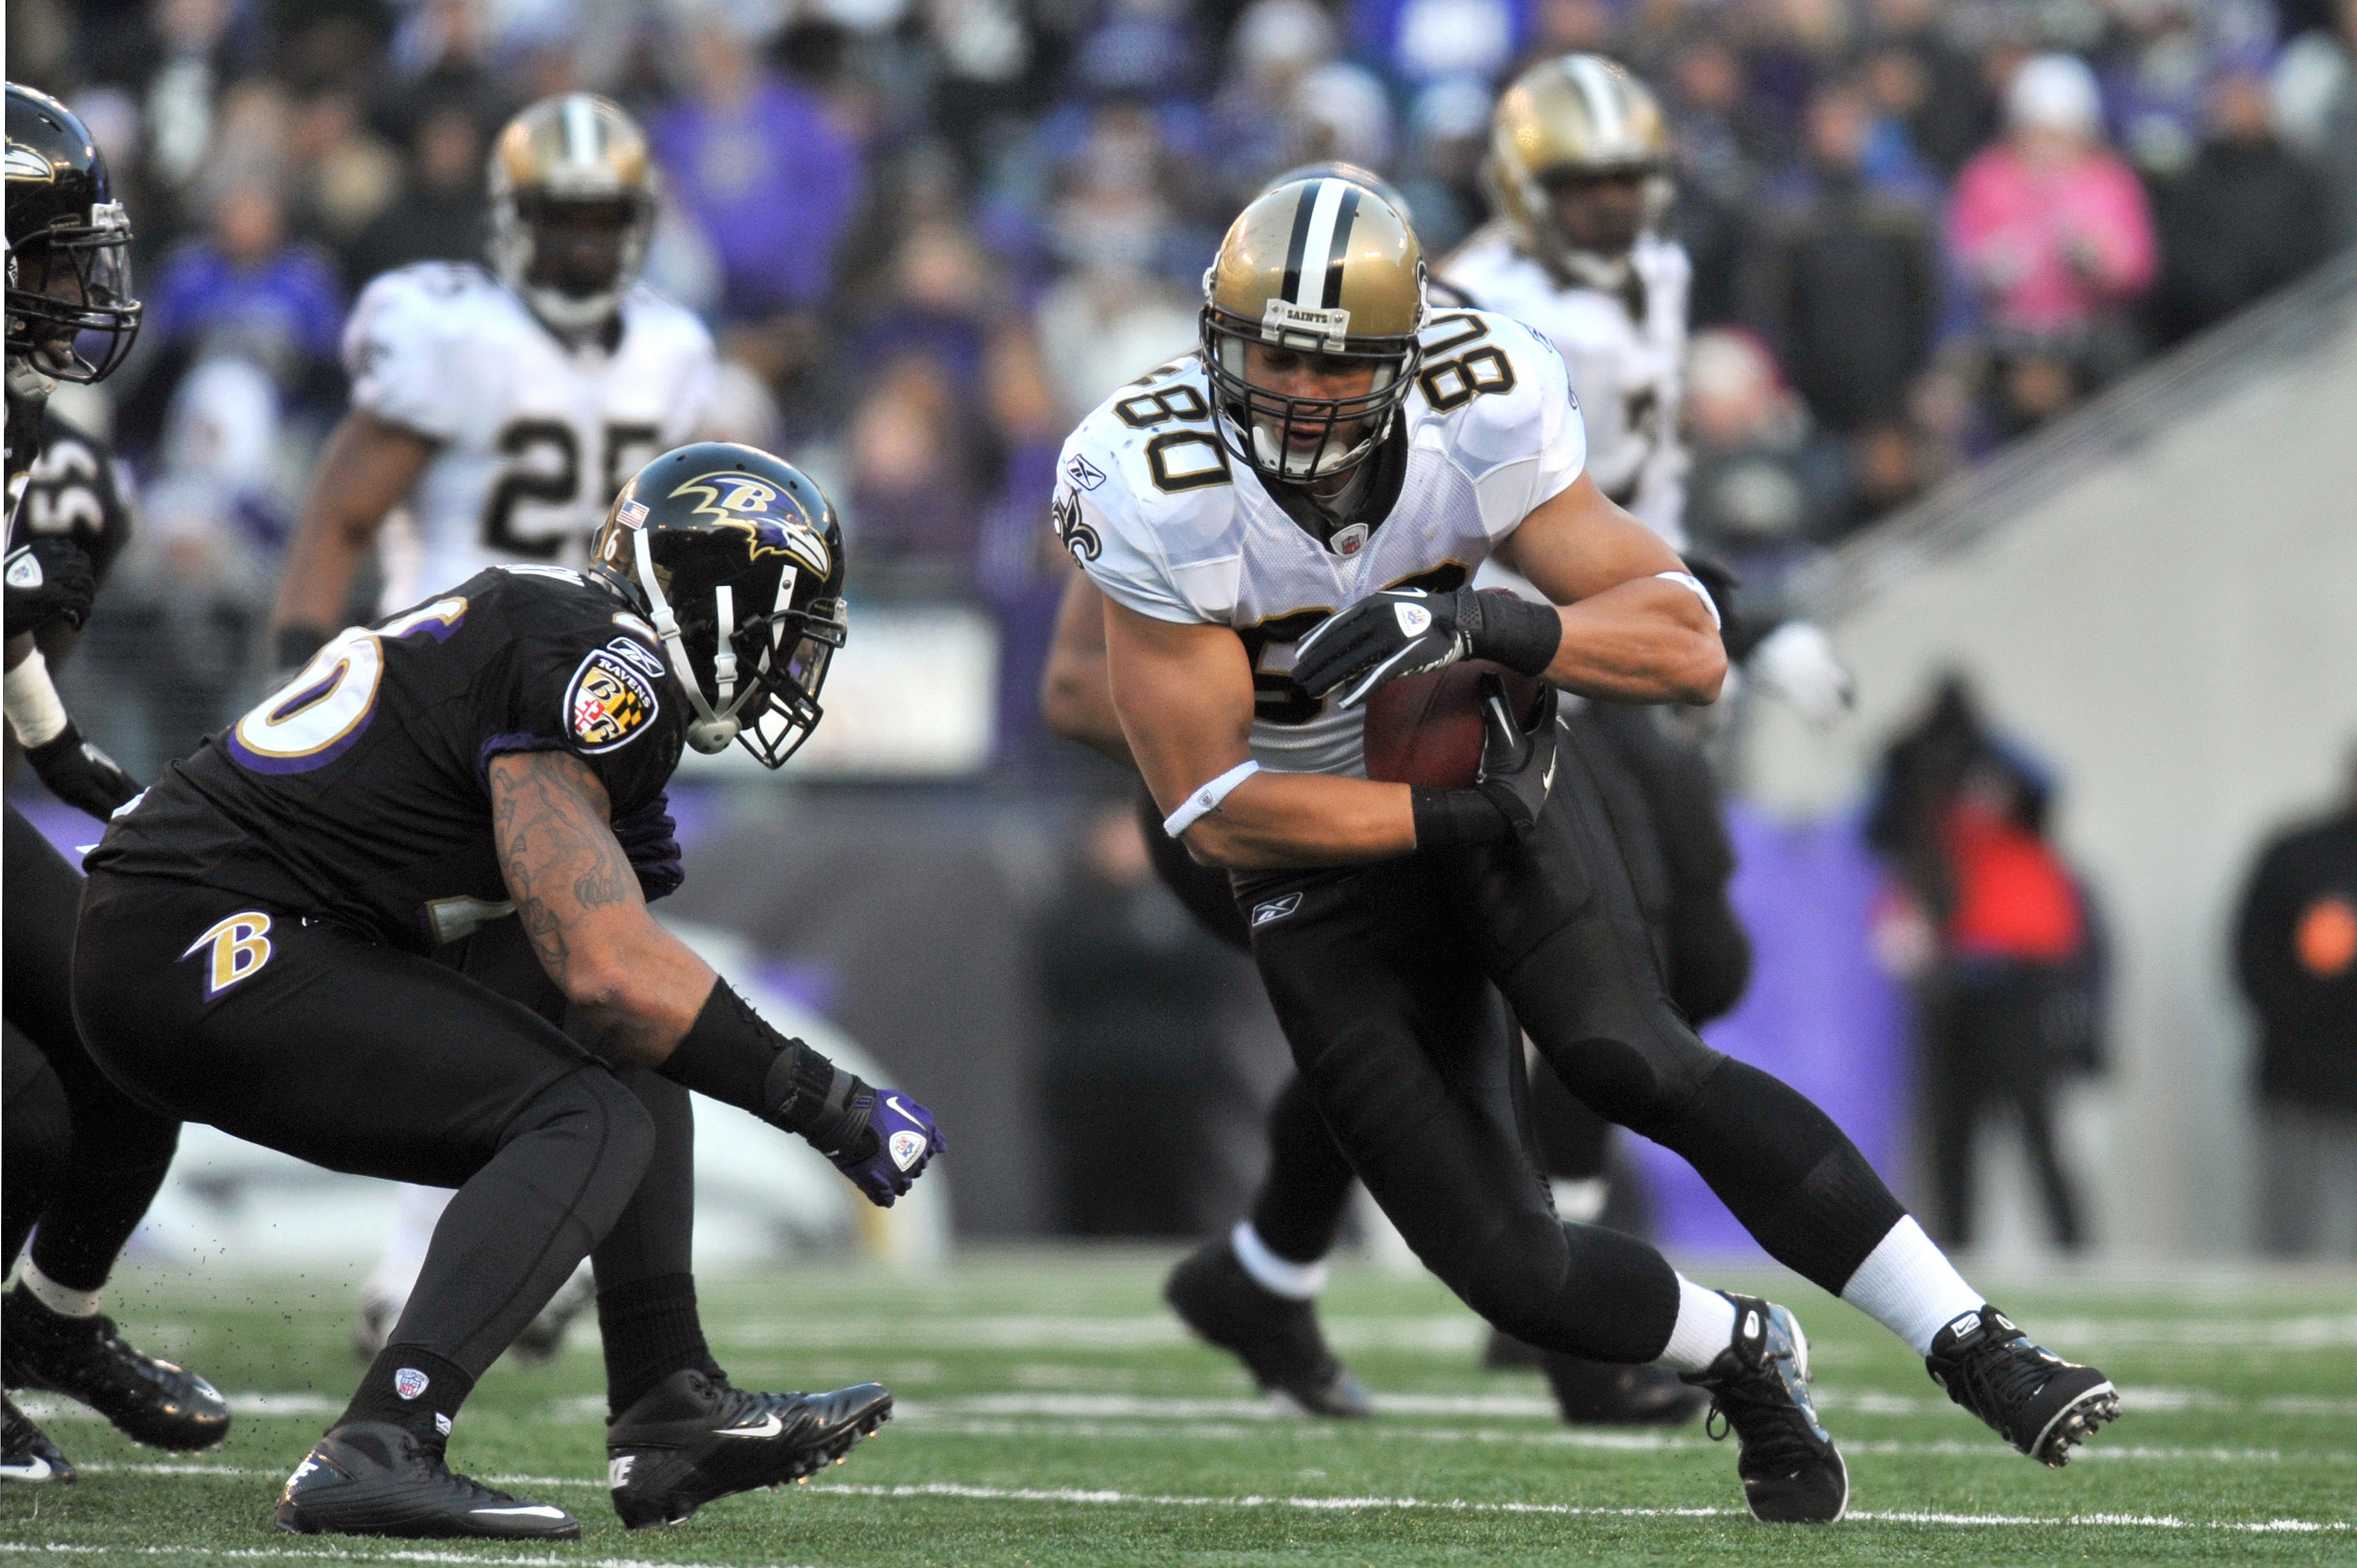 BALTIMORE, MD - DECEMBER 19:  Jimmy Graham #80 of the New Orleans Saints runs the ball after a catch against the Baltimore Ravens  at M&T Bank Stadium on December 19, 2010 in Baltimore, Maryland. The Ravens defeated the Saints 30-24. (Photo by Larry Frenc